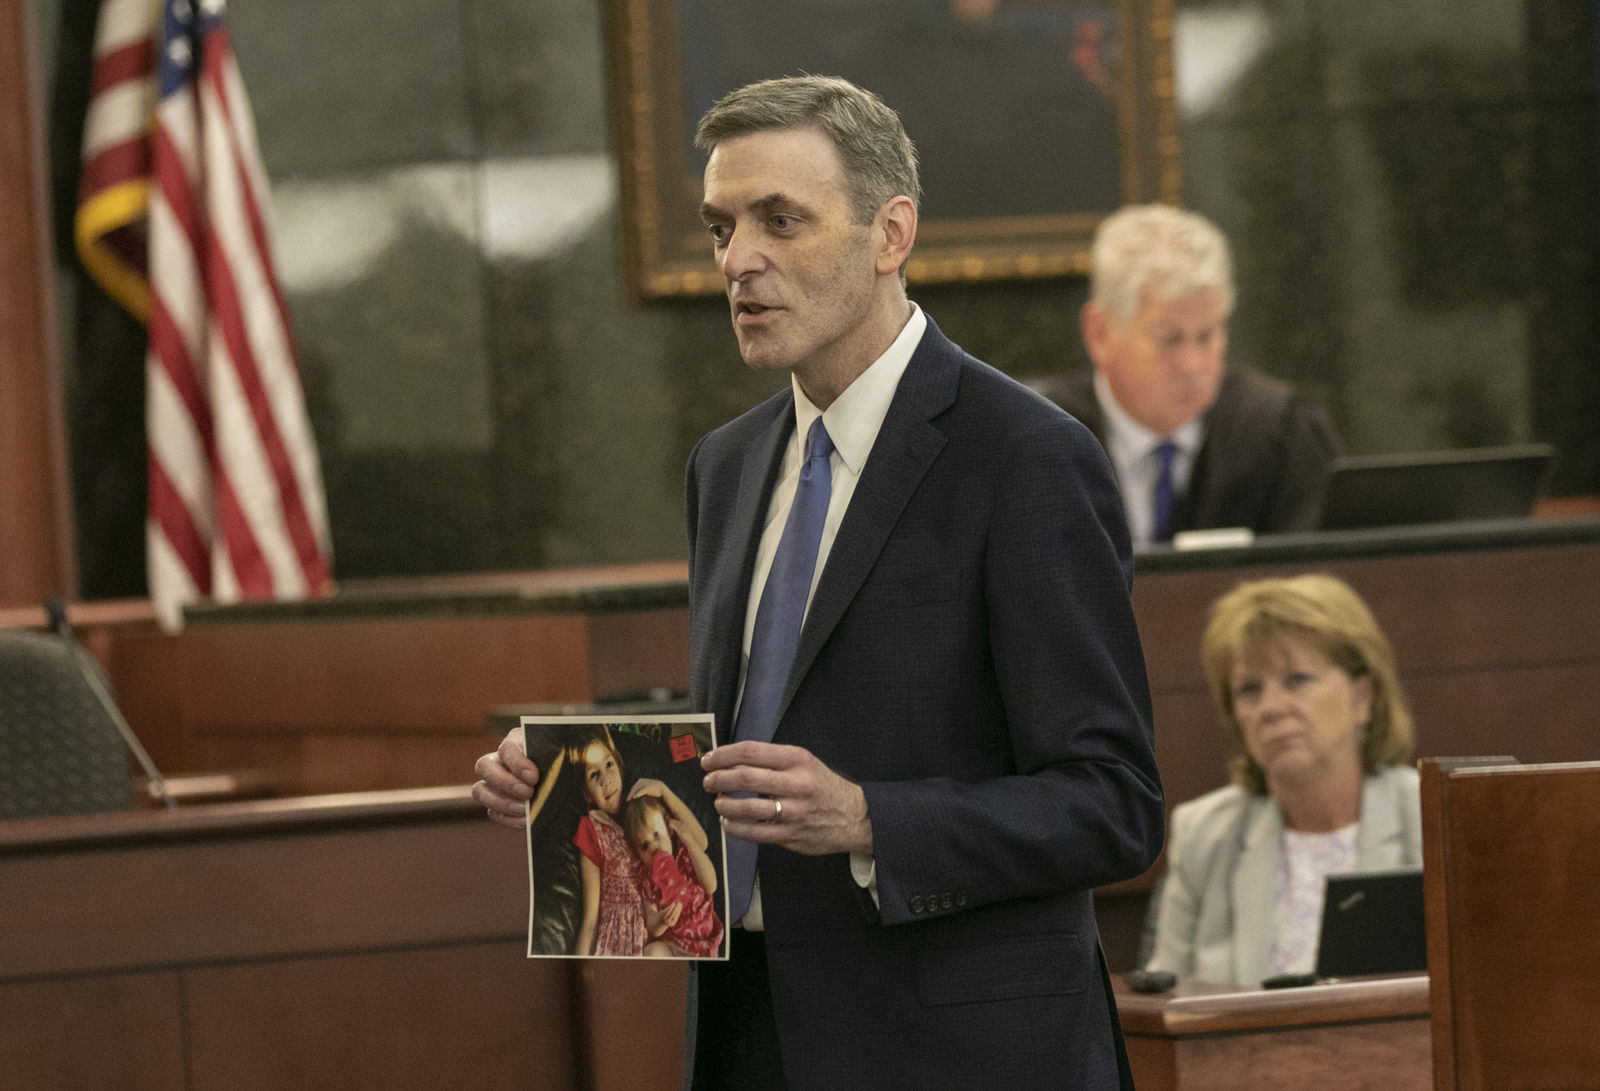 11th Circuit Solicitor Rick Hubbard delivers closing arguments, showing pictures of the Jones children during the sentencing phase of the trial of Timothy Jones Jr. in Lexington, S.C. on Thursday, June 13, 2019. (Tracy Glantz/The State via AP, Pool)